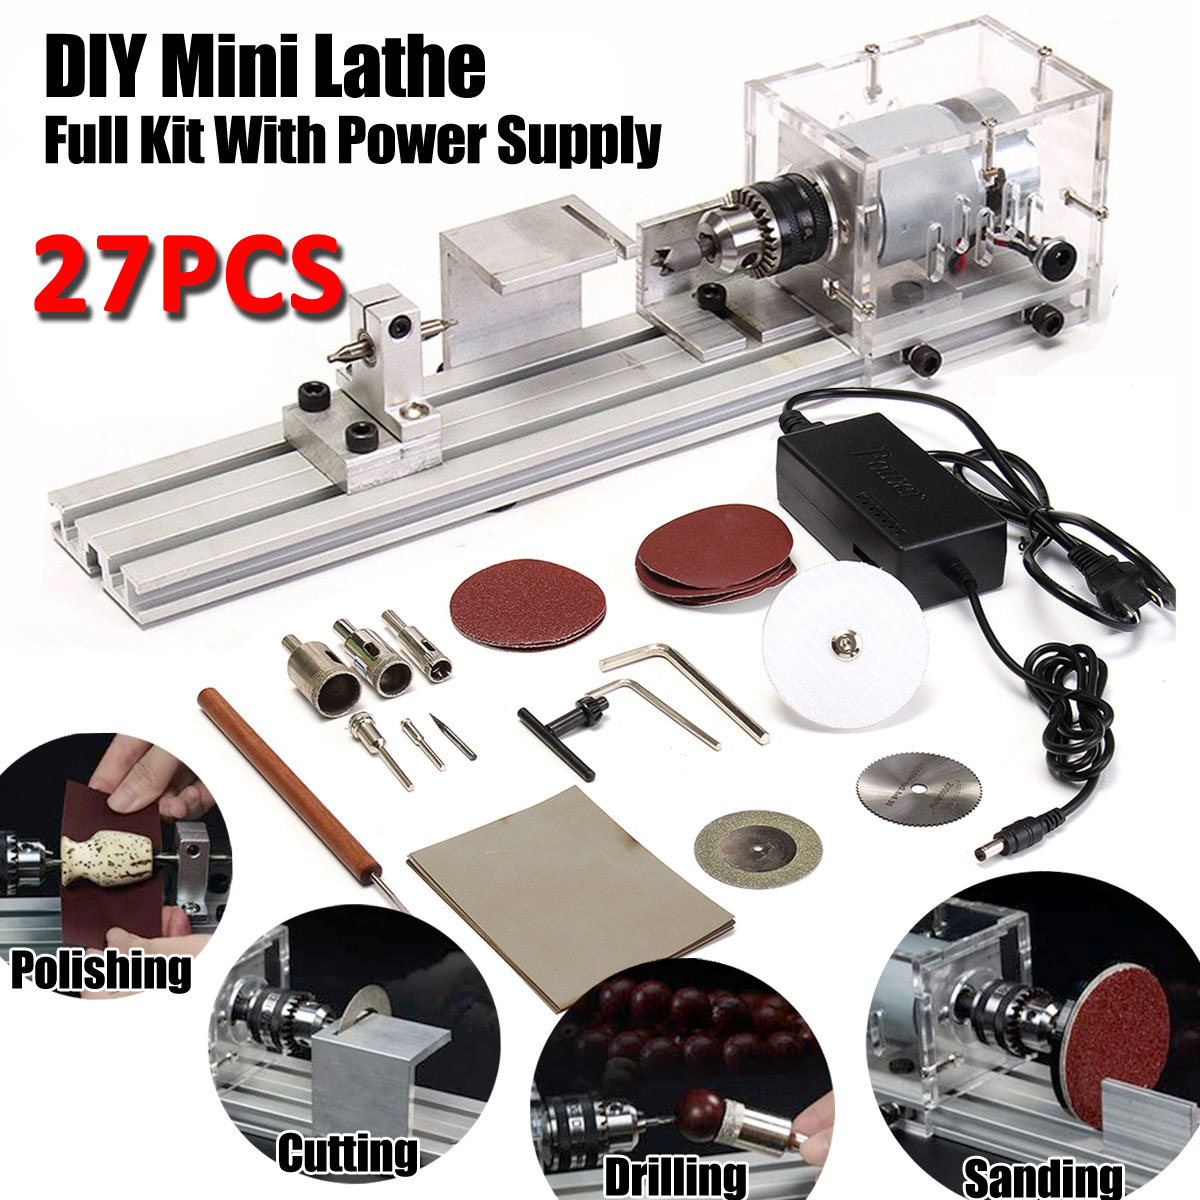 DC24V Mini Buddha Lathe Beads Machine Polisher Table Saw DIY Wood Woodworking Lathe Rotary Tool With Power Adapter